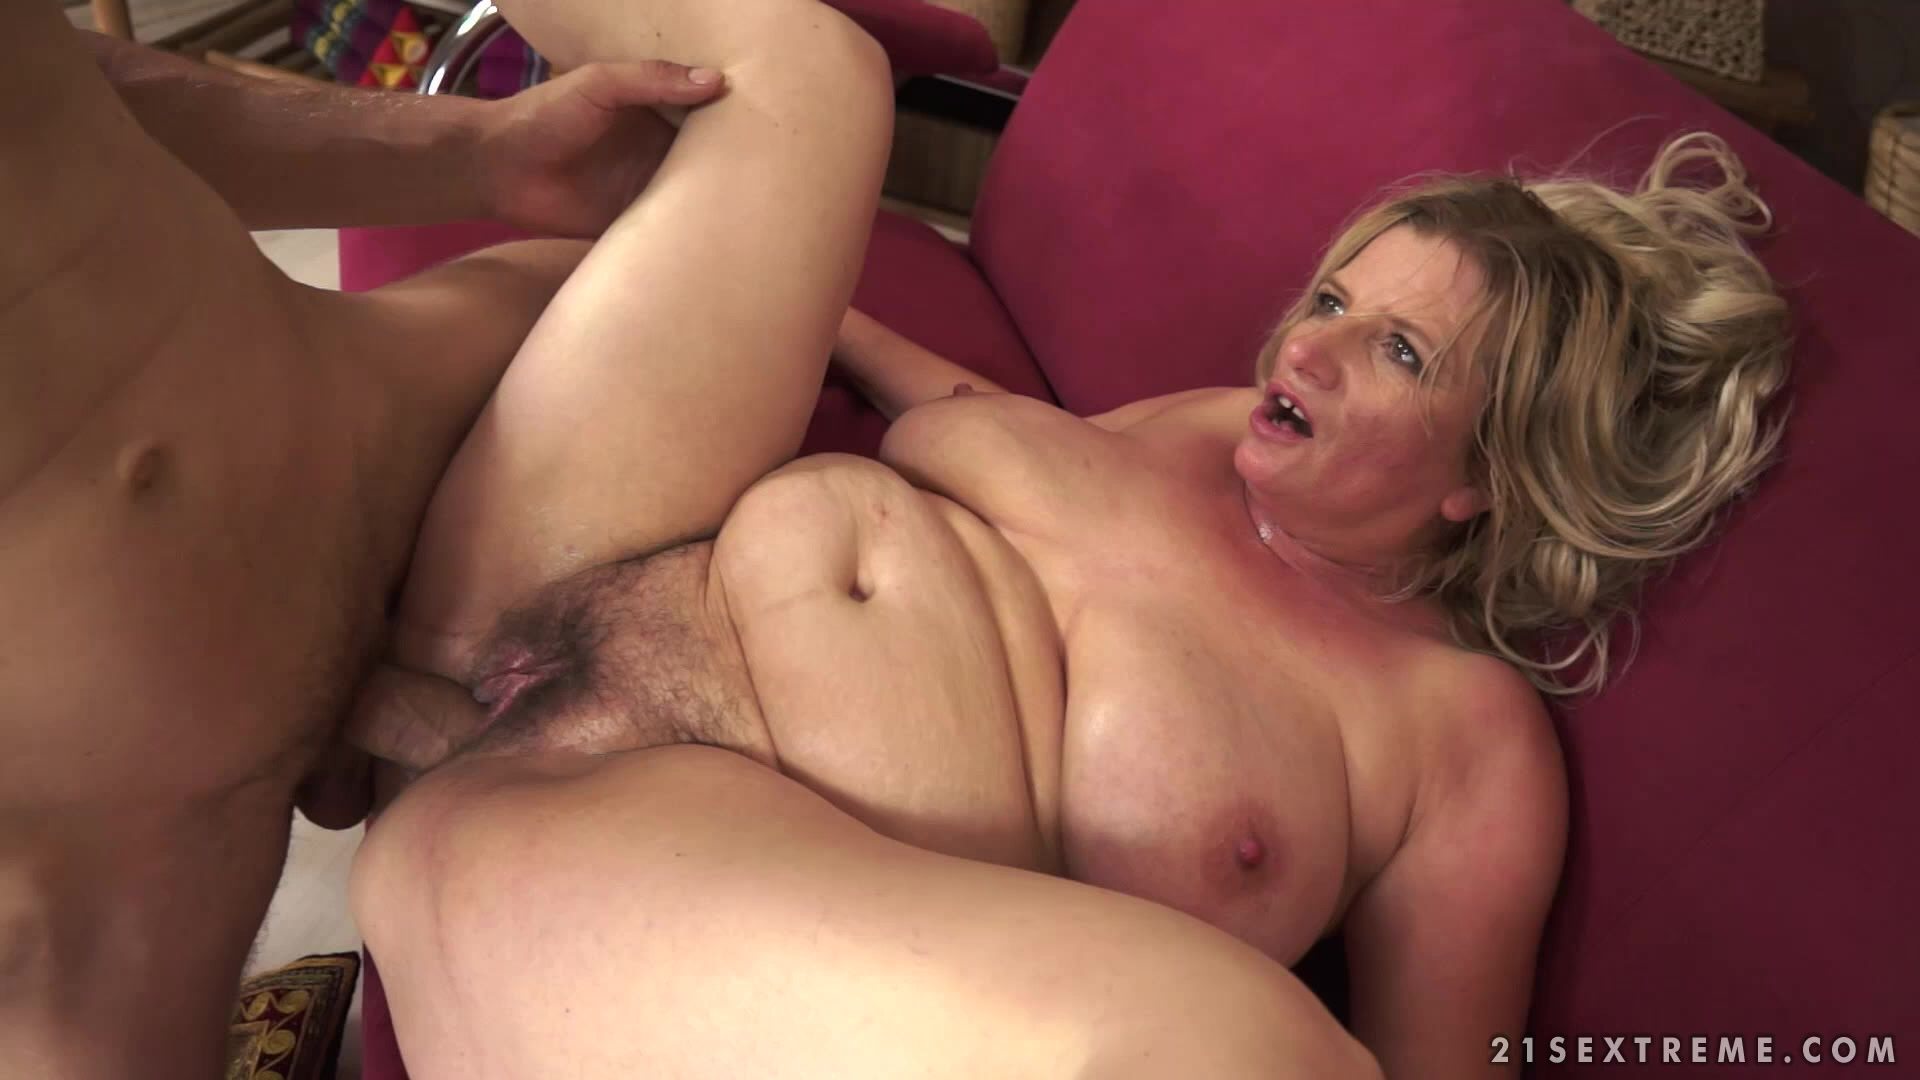 Dirty Anal Sex With A Filthy Mature Blond Woman